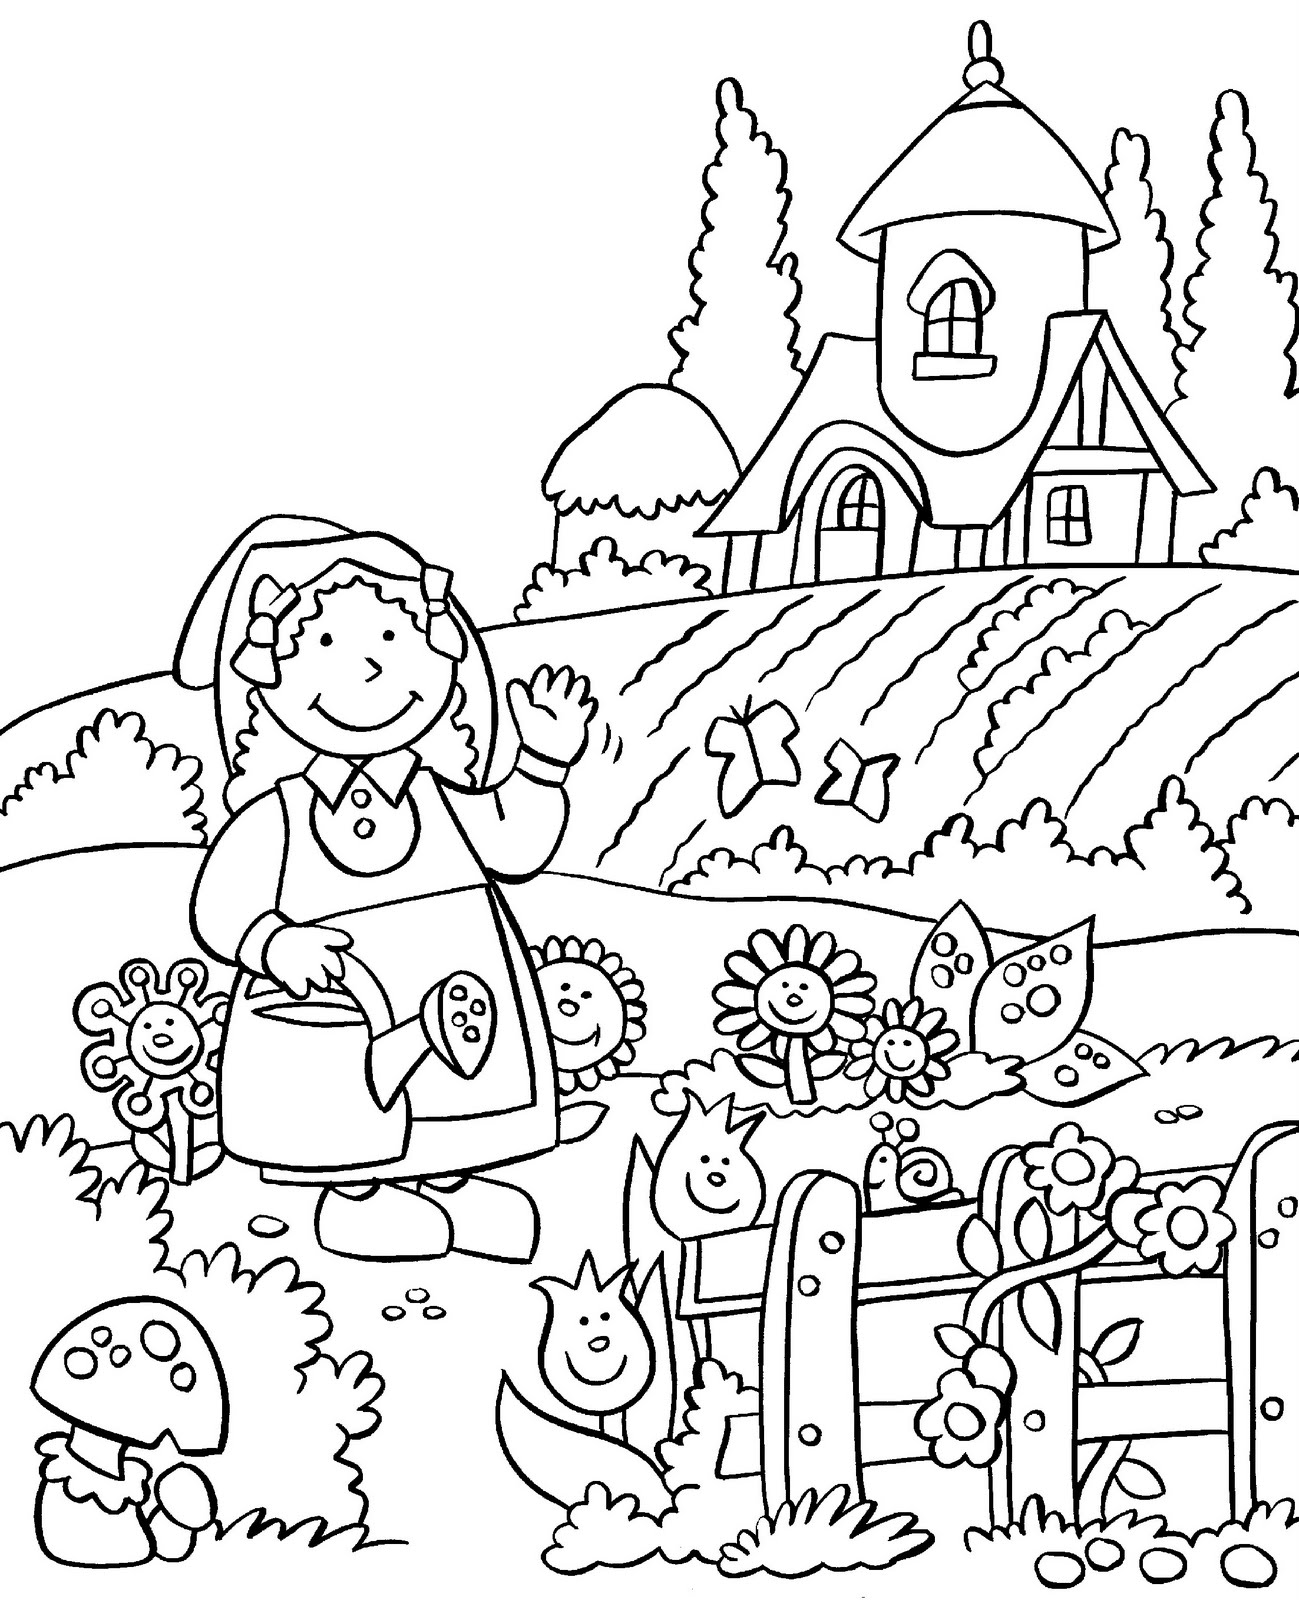 1299x1600 This Is Country Coloring Pages Templates, Photo, Images, Pictures